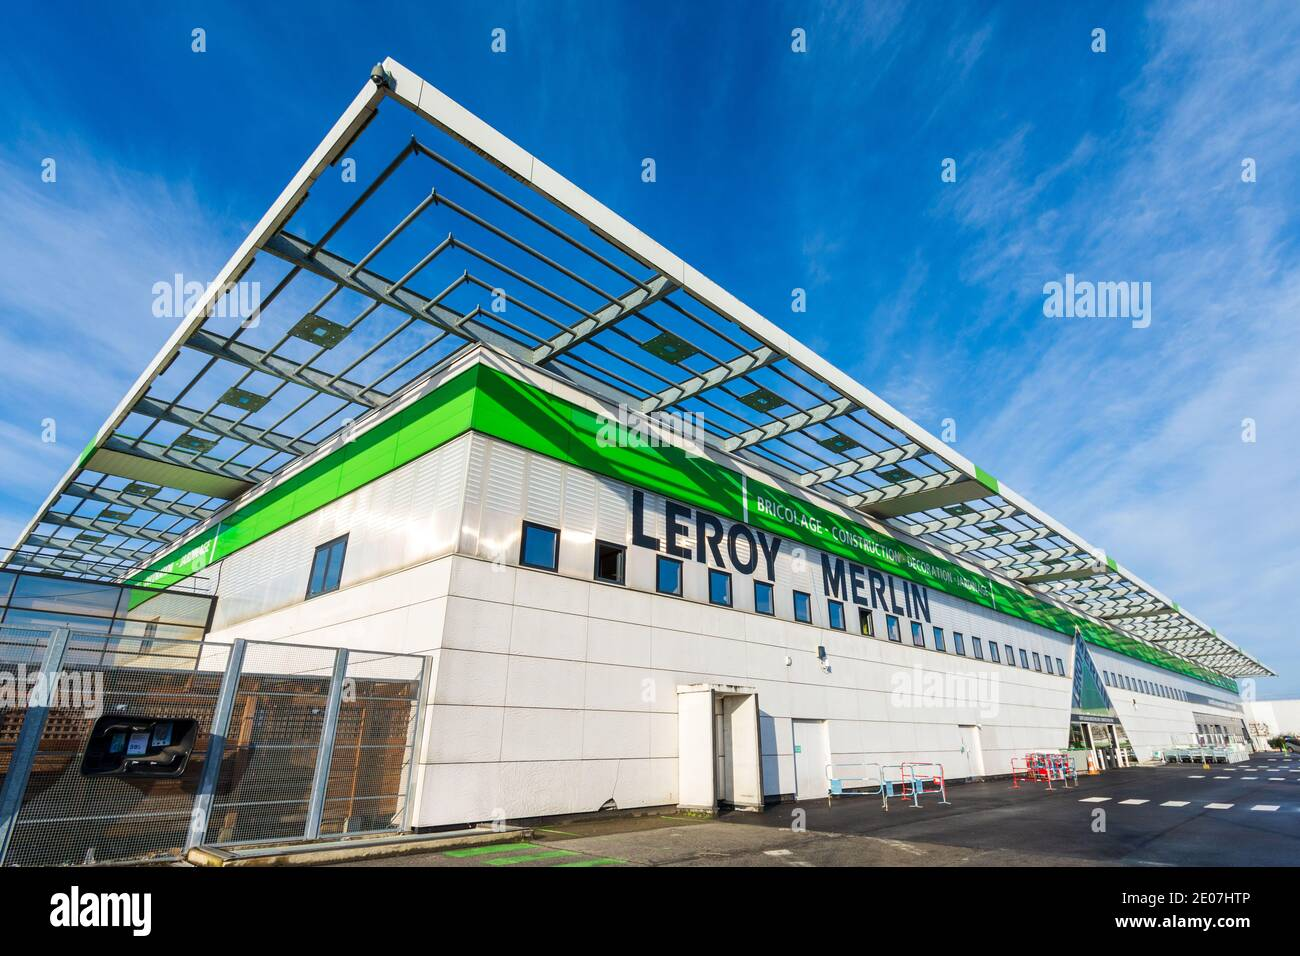 https www alamy com bois darcy france december 30 2020 exterior view of a leroy merlin store an international french retail company specializing in diy image396006150 html